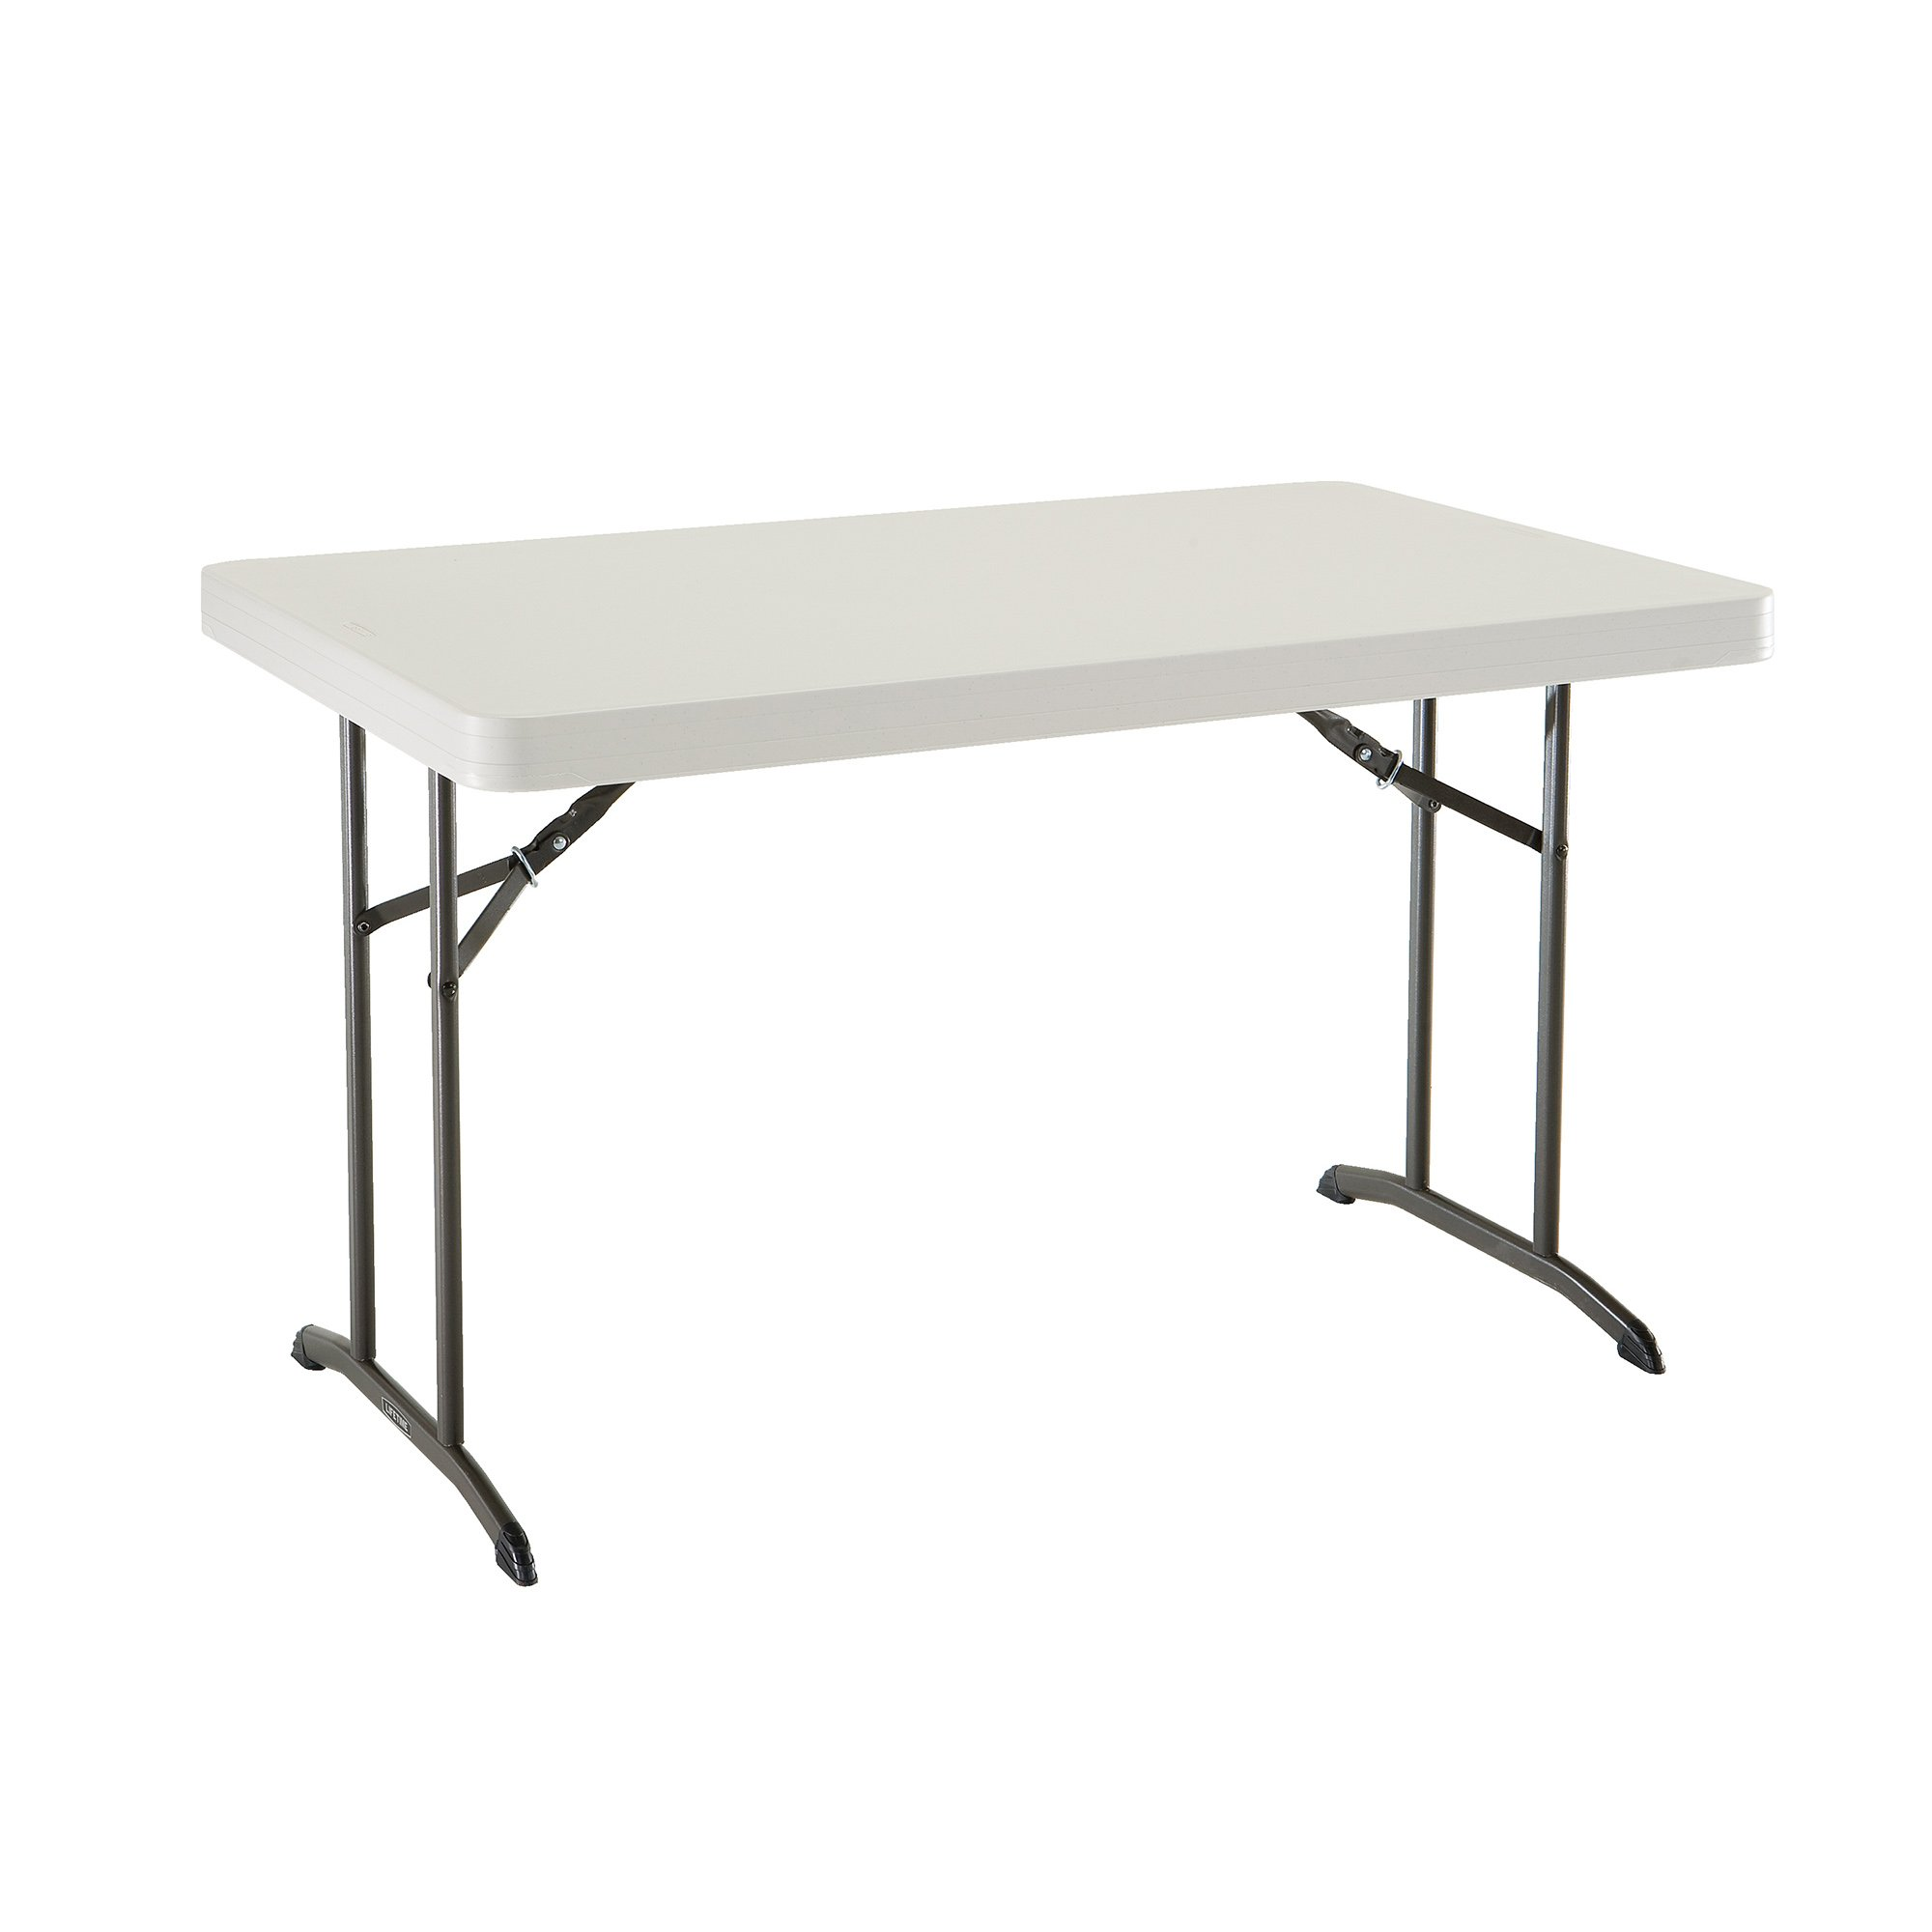 Lifetime 80568 48''x30'' Folding Table by Lifetime